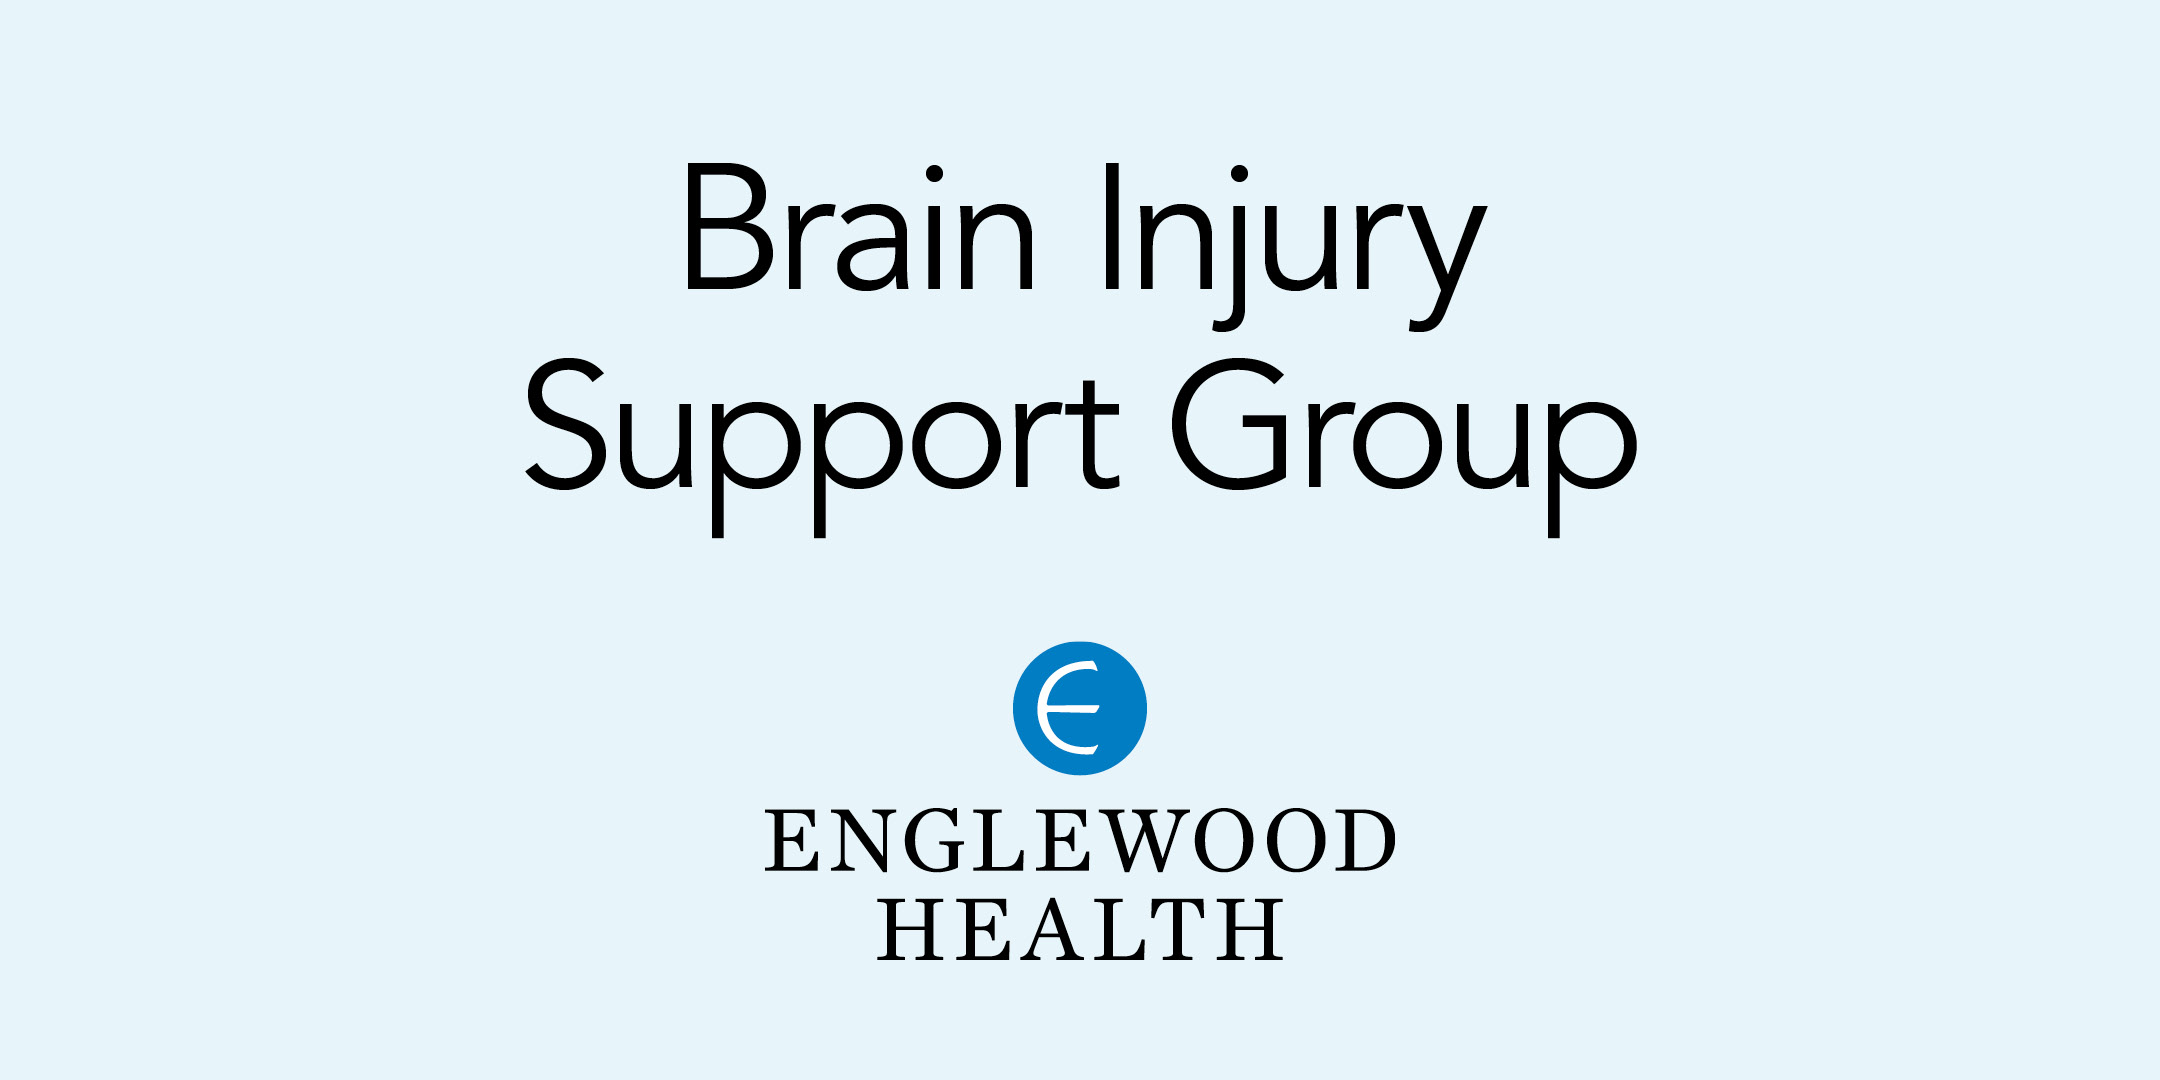 Brain Injury Support Group